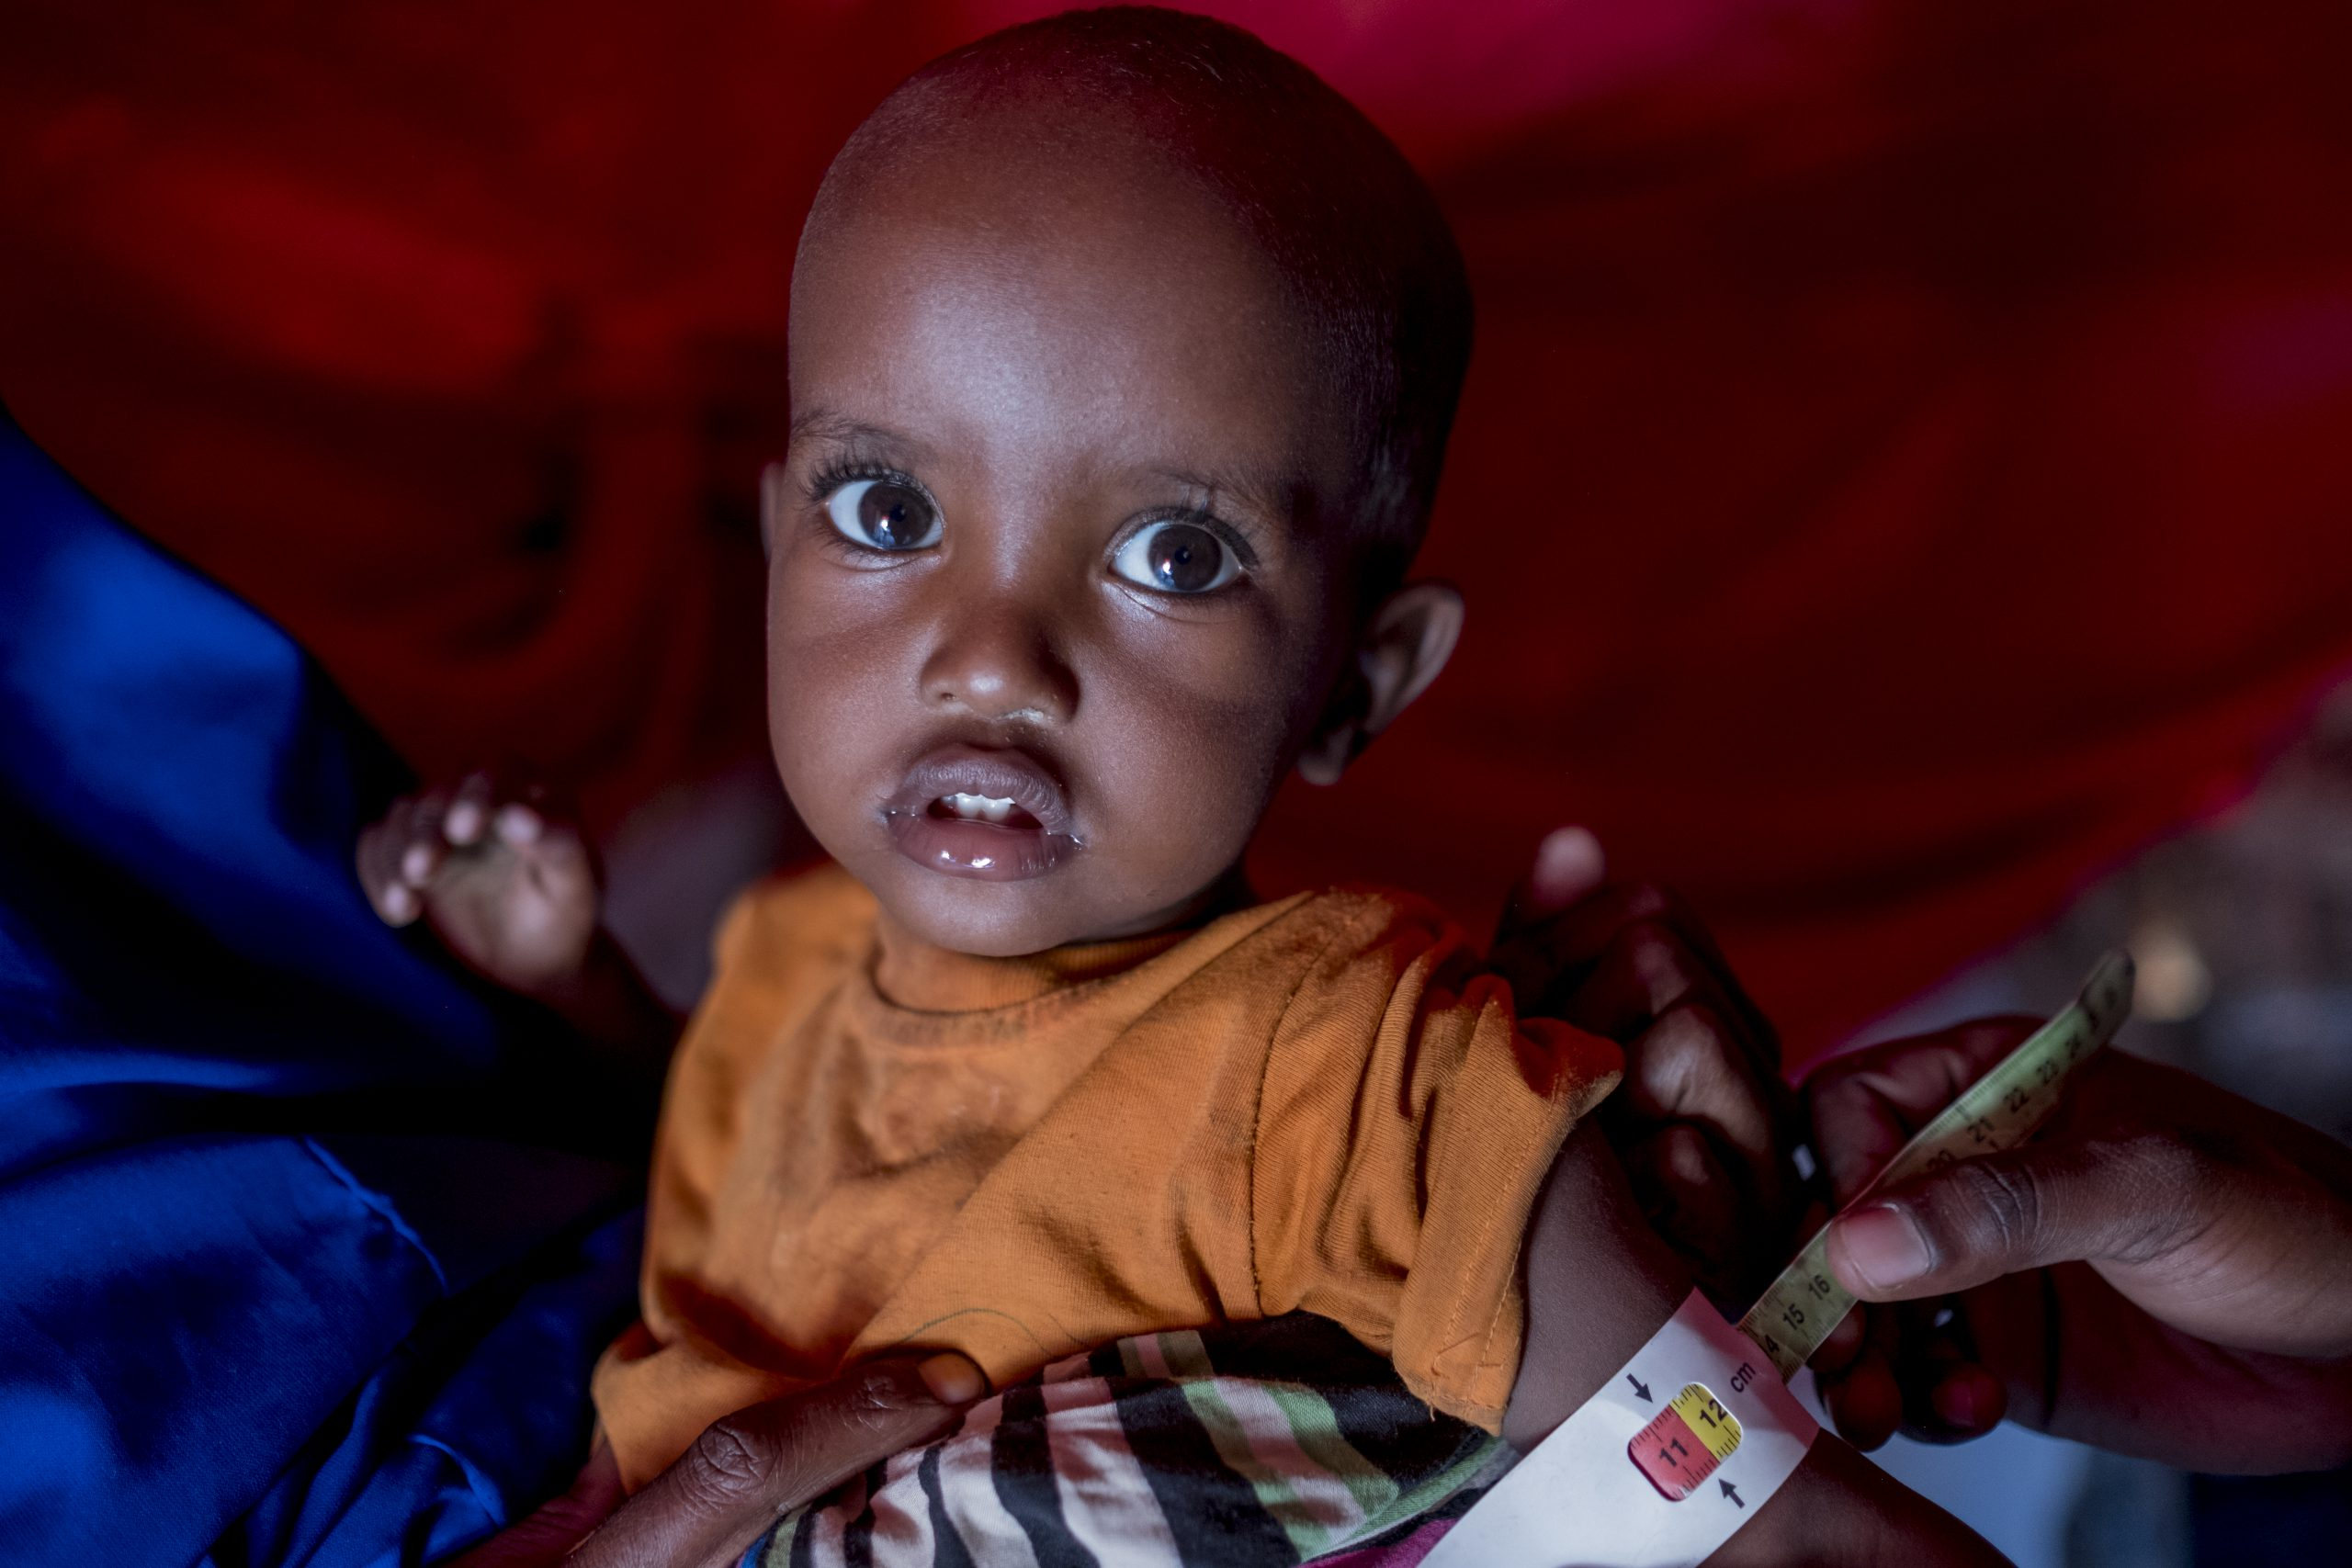 Children in Somalia Need Our Help